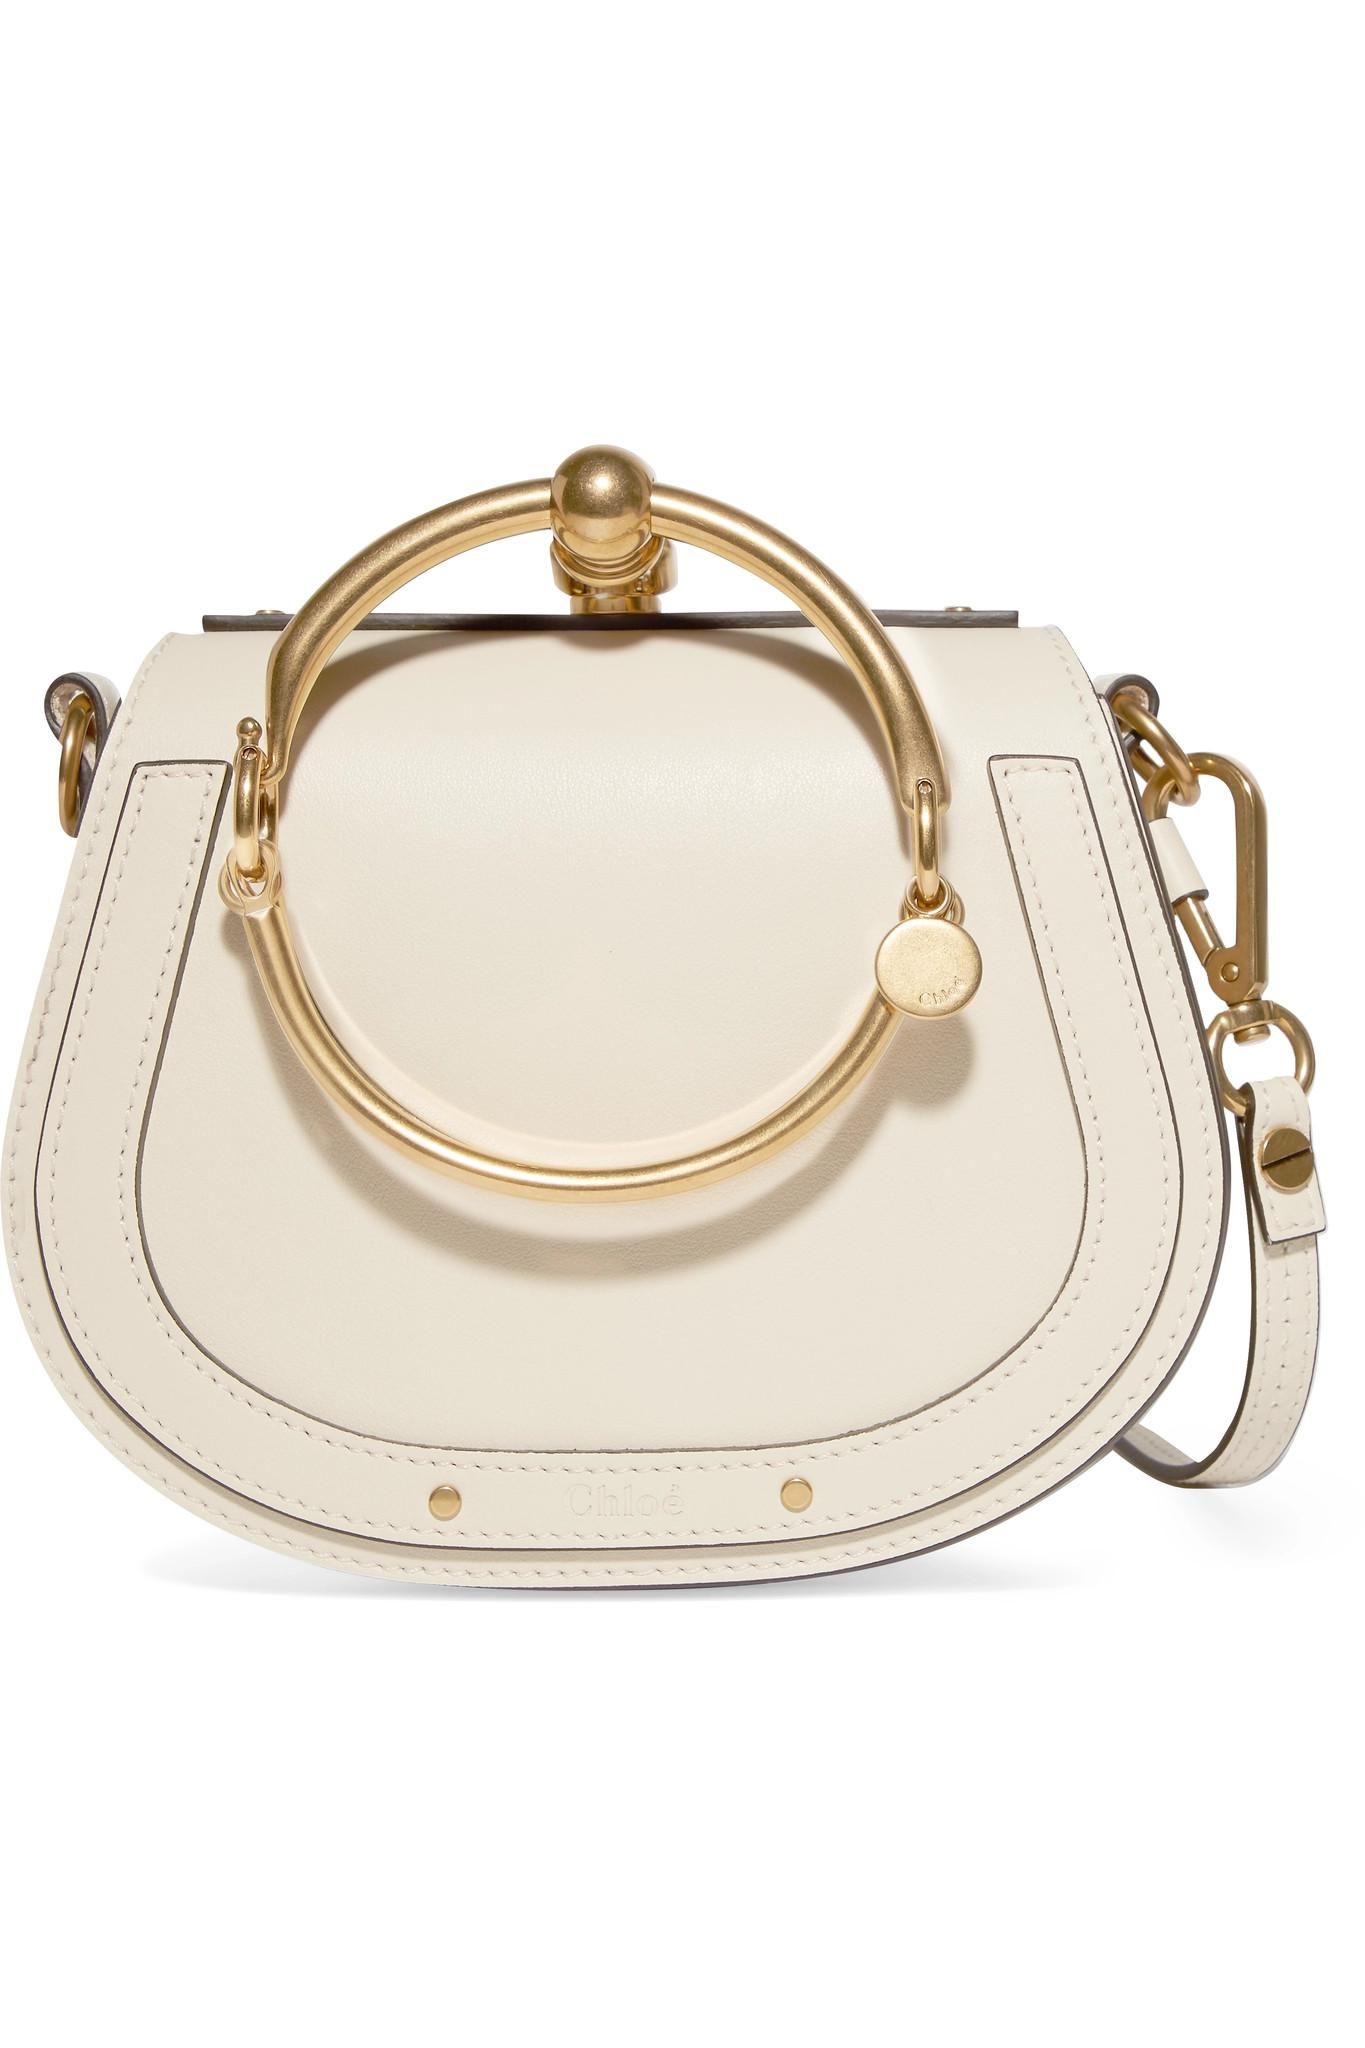 6fad06bf95 Chloé Nile Bracelet Small Leather And Suede Shoulder Bag in White - Lyst